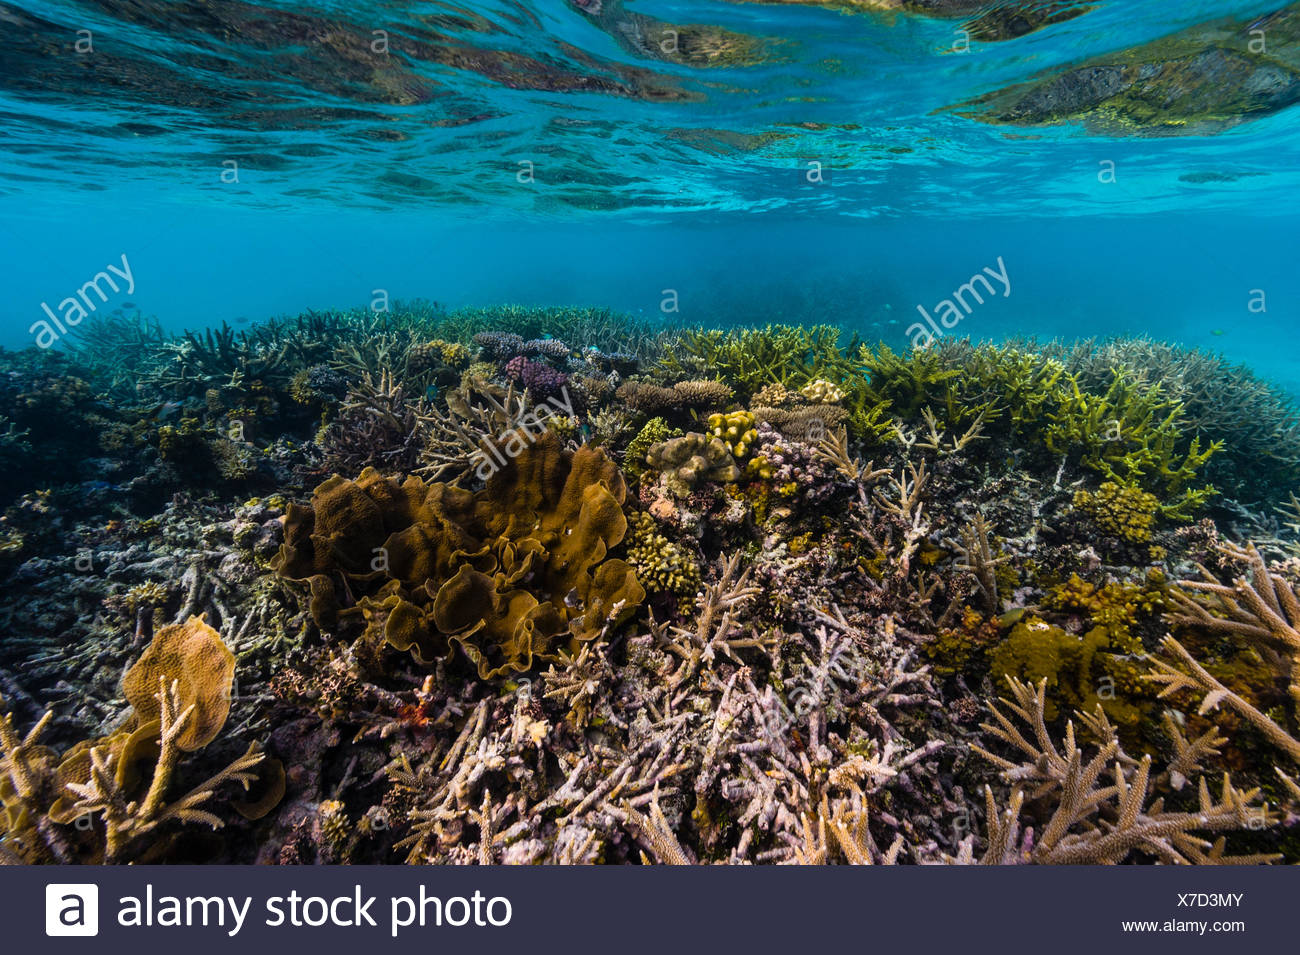 A flourishing coral reef in shallow tropical seas. - Stock Image